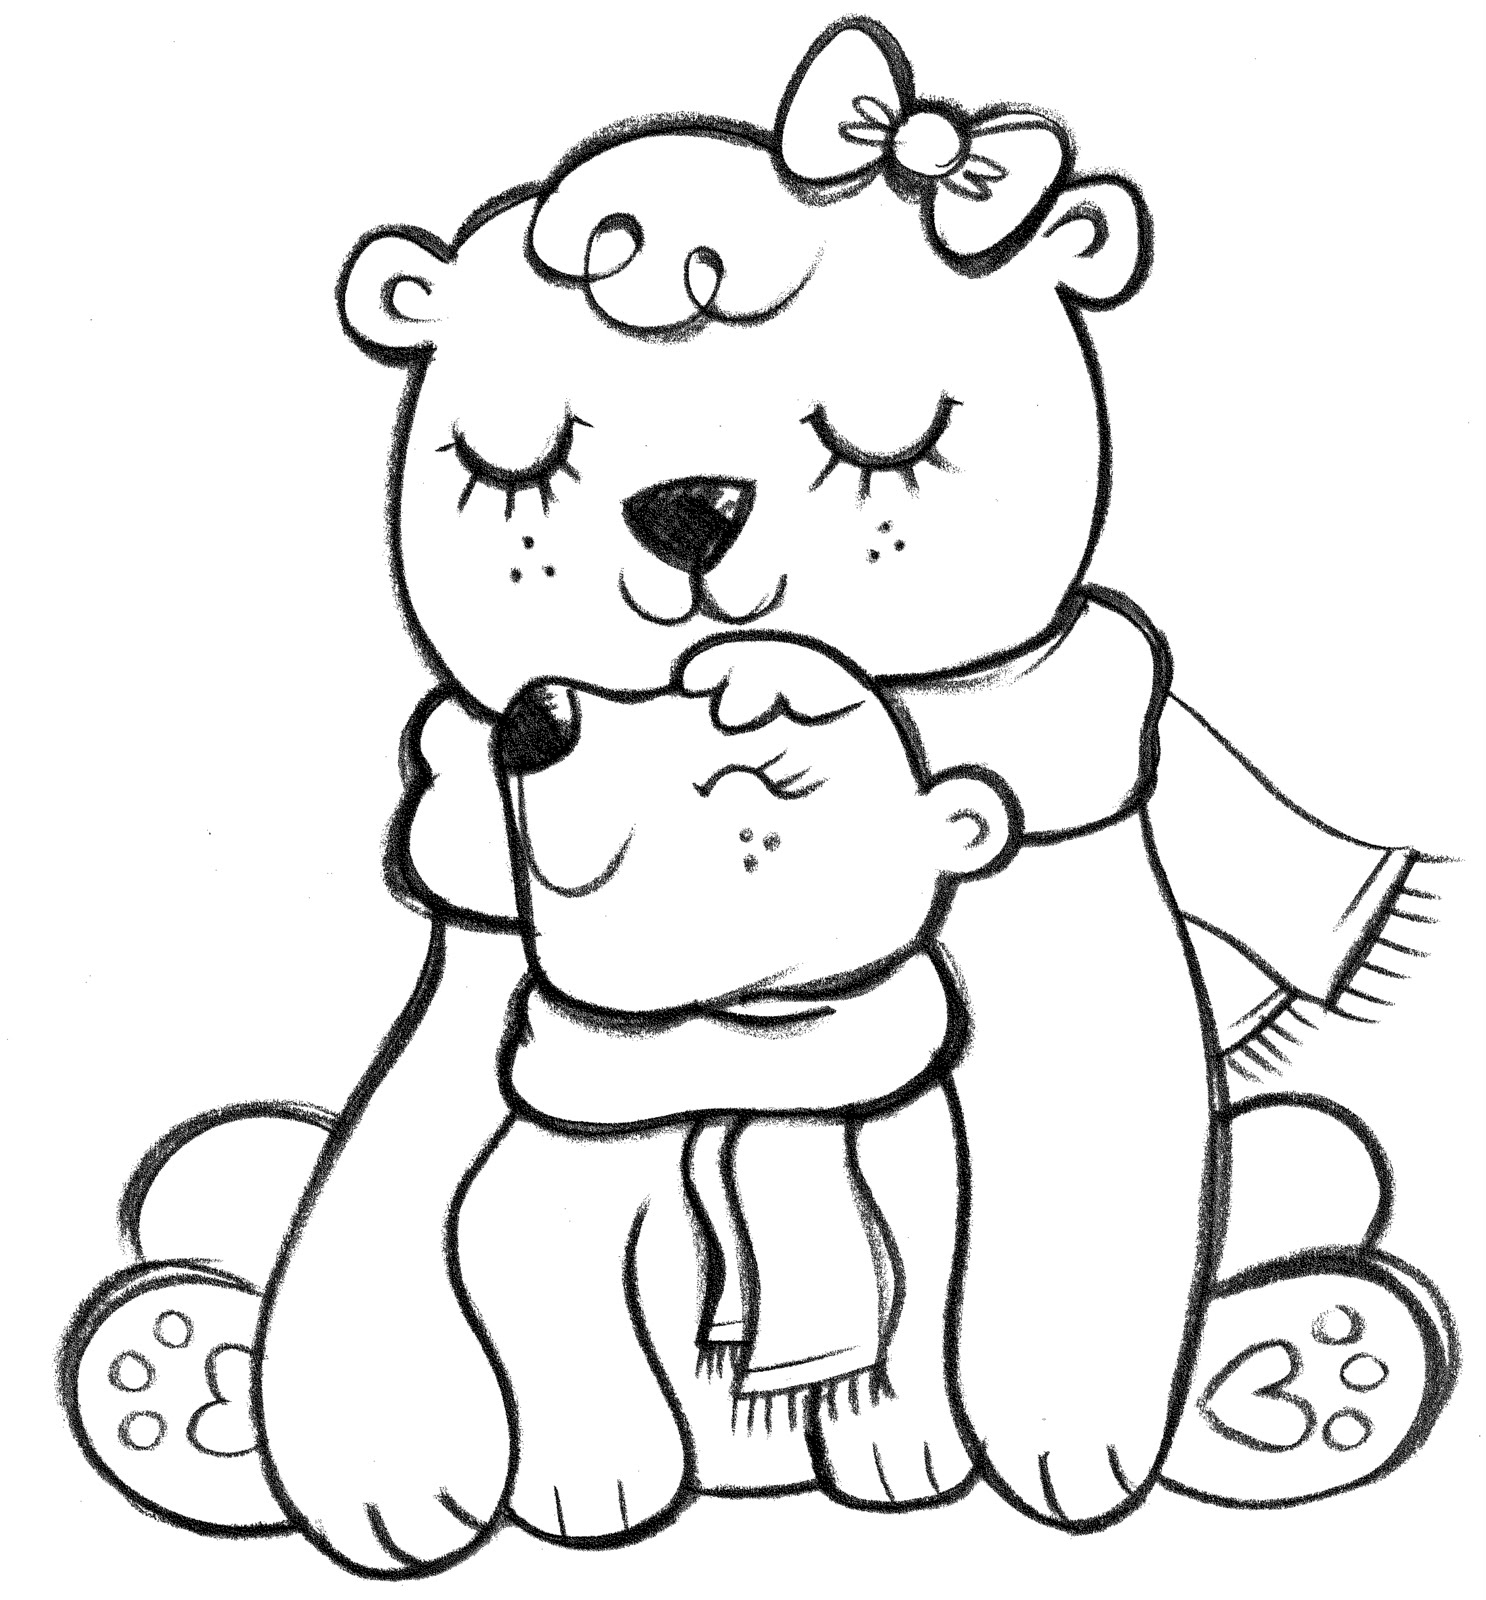 One Line Art Bear : Line drawings of bears images frompo